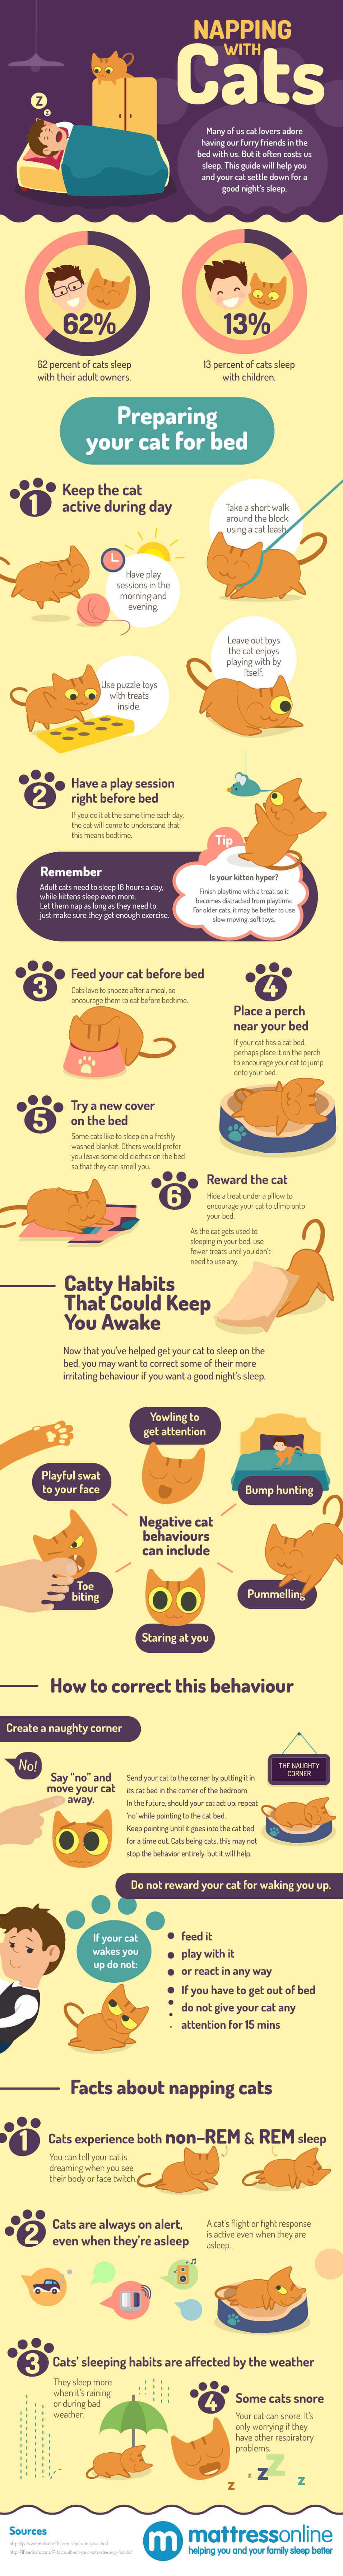 Napping with Cats infographic